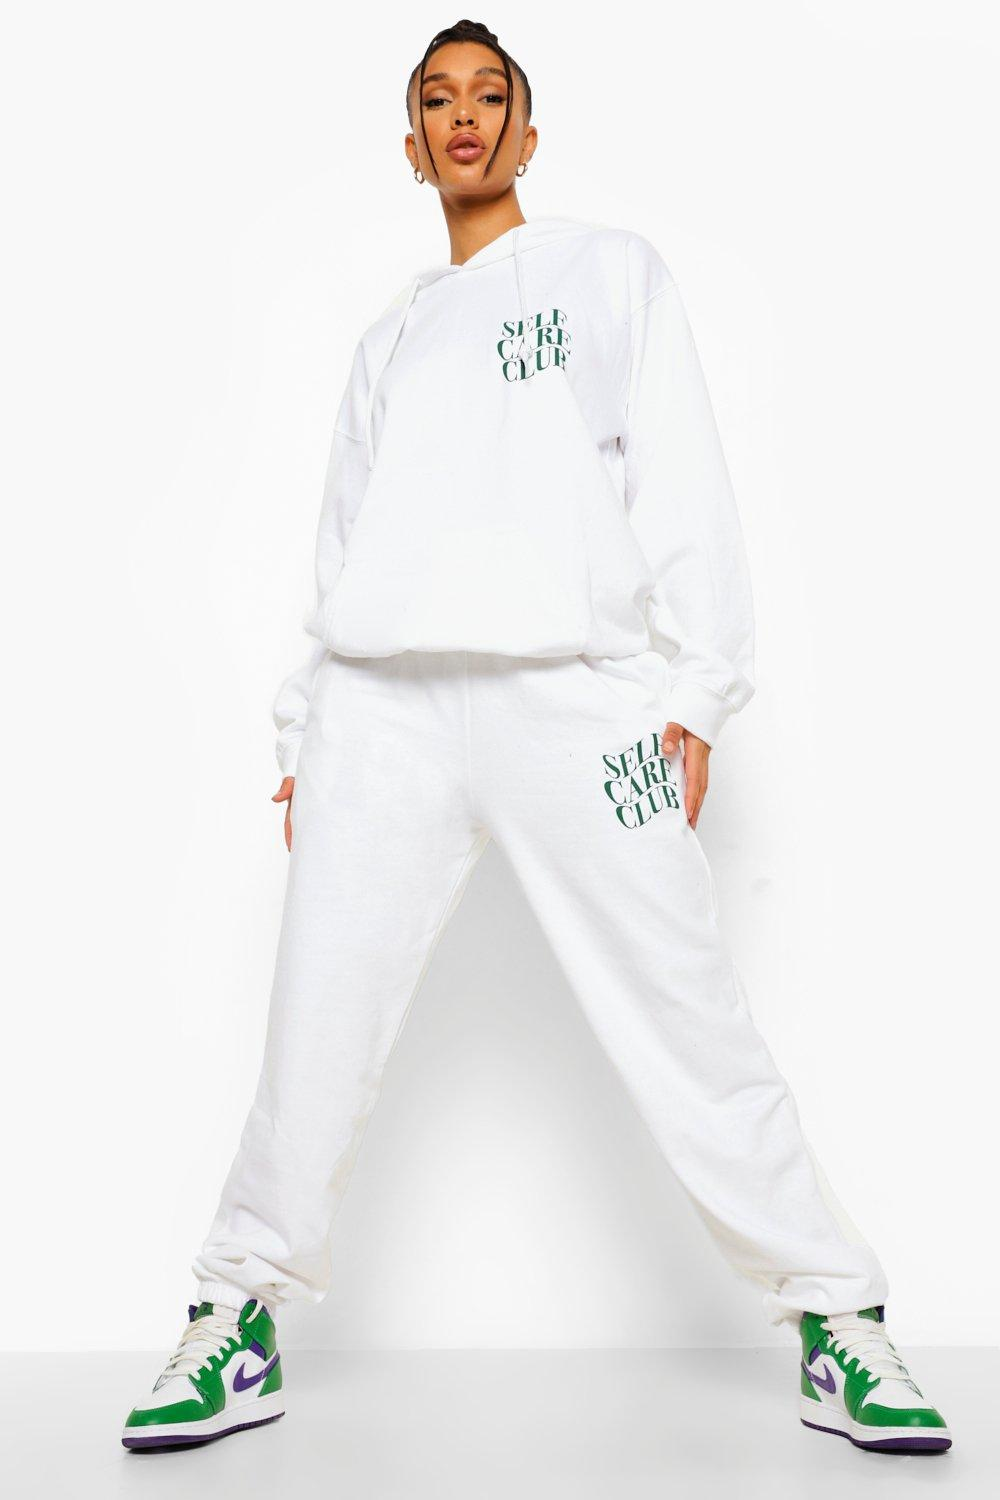 womens self care club tracksuit - white - s